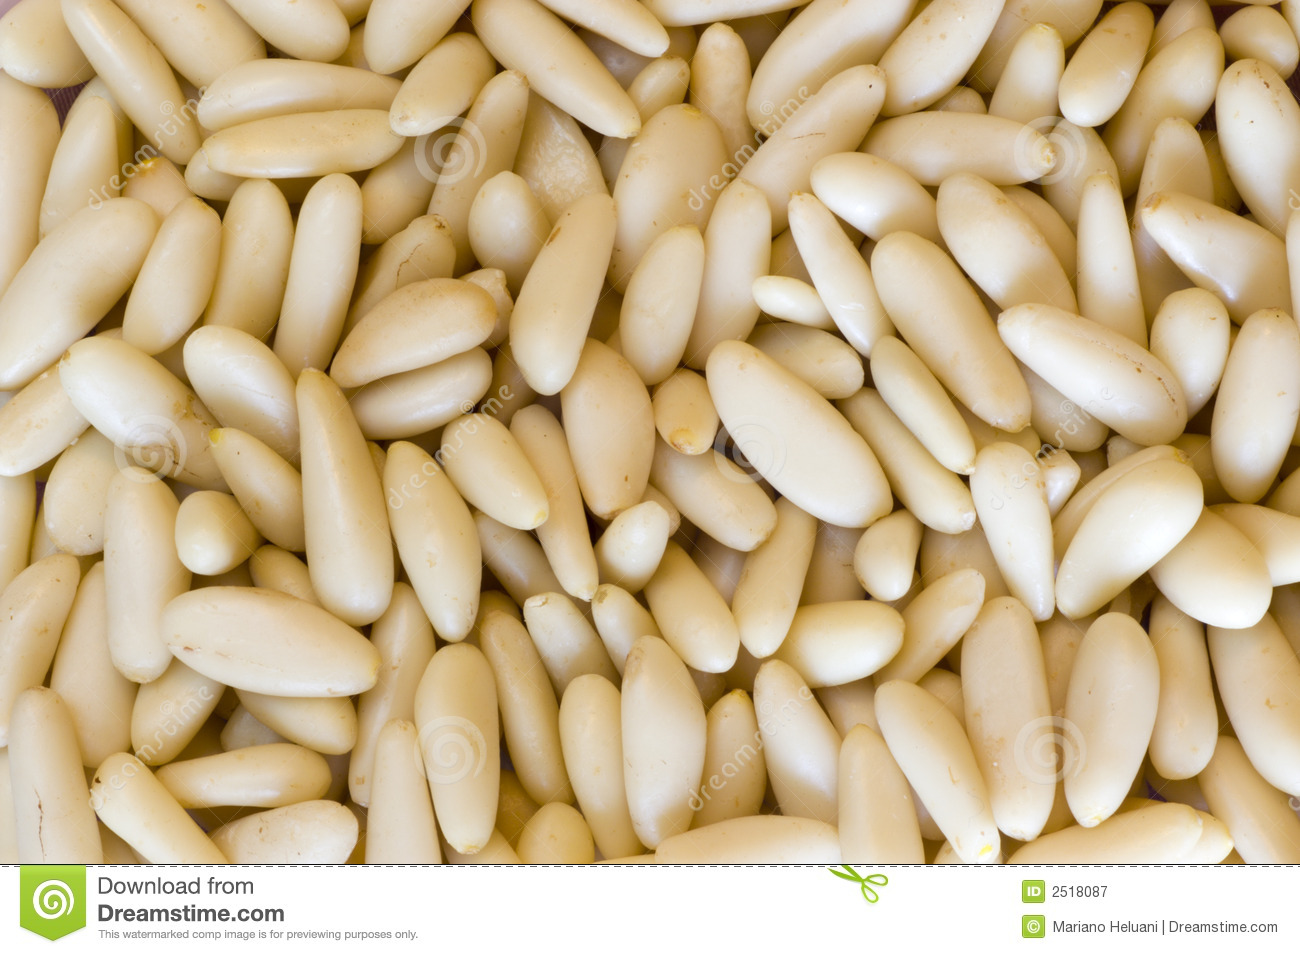 Pine Nuts Royalty Free Stock Photography - Image: 2518087